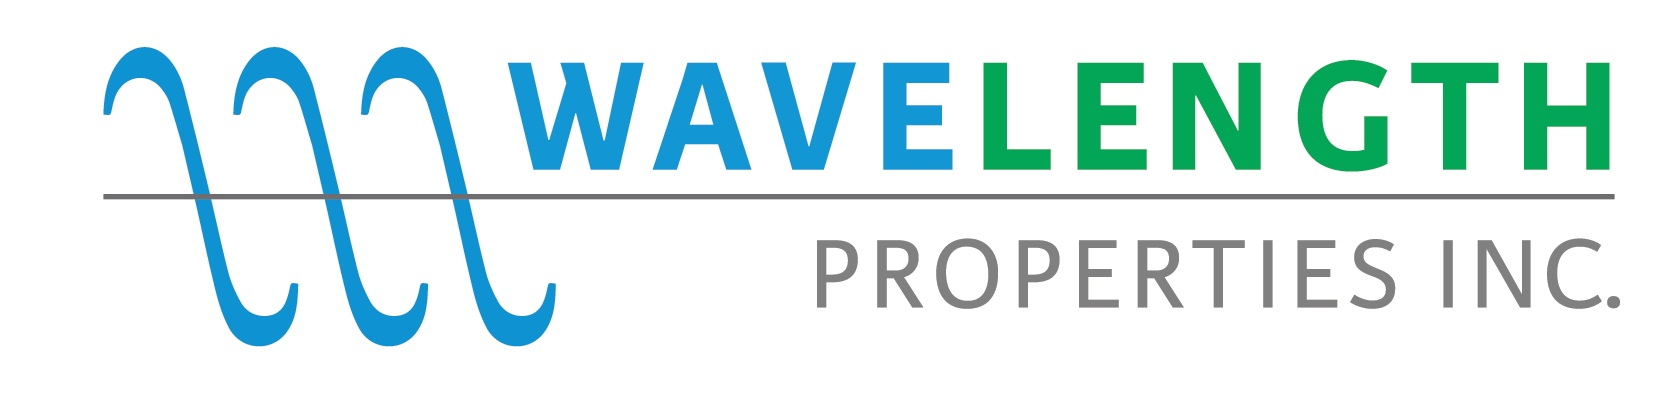 Wavelength Properties Inc.